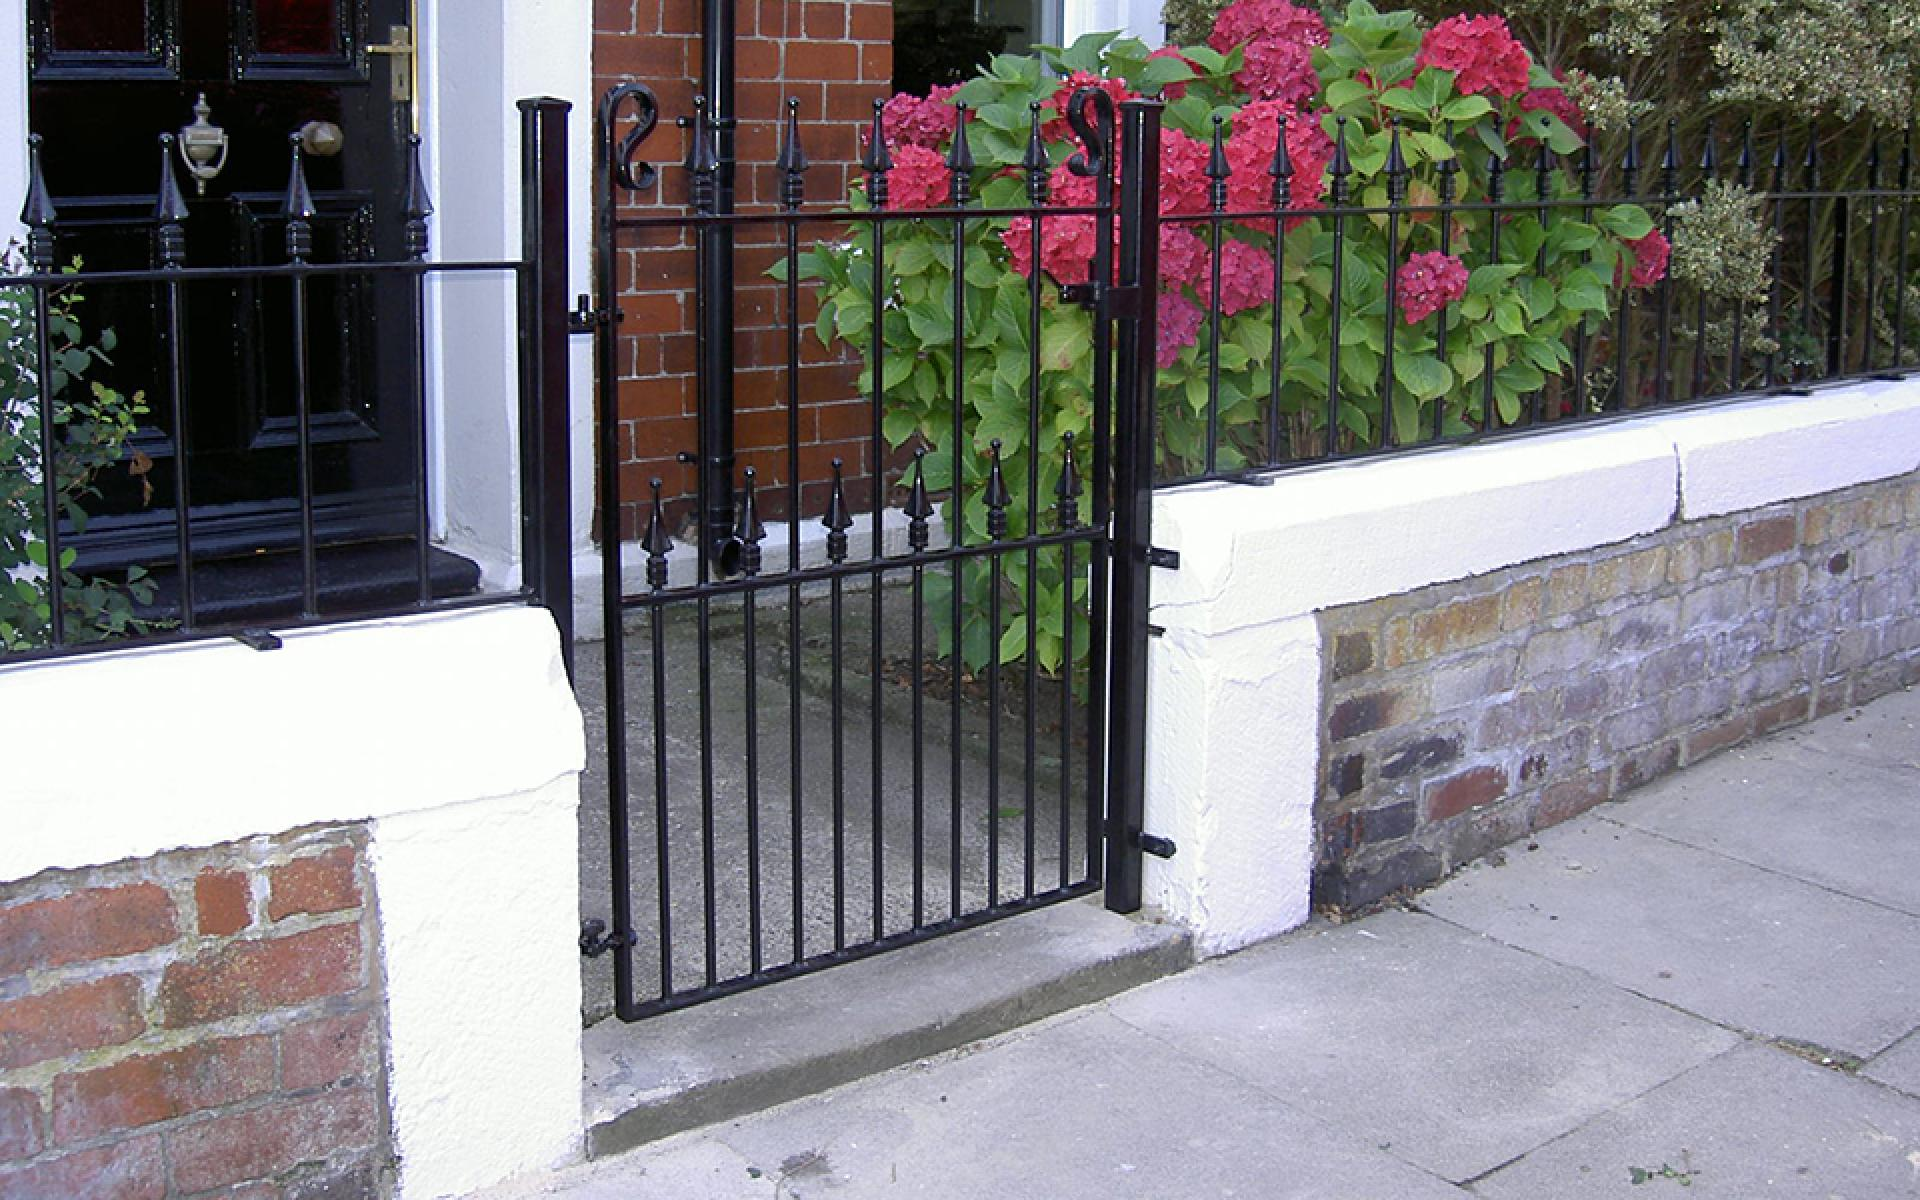 Wrought iron pedestrian garden gate and railings